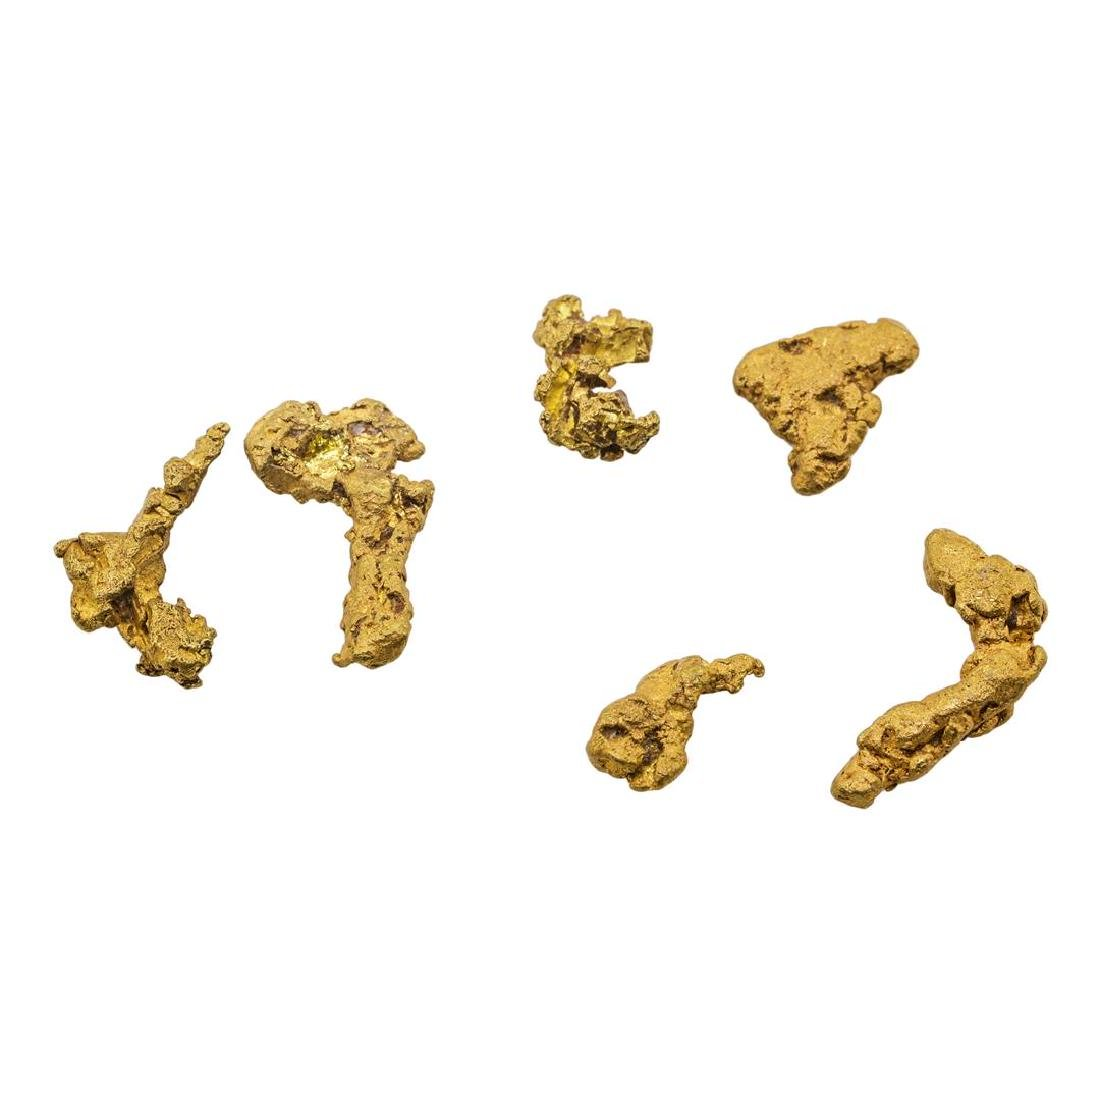 Lot of Gold Nuggets 2.6 grams Total Weight